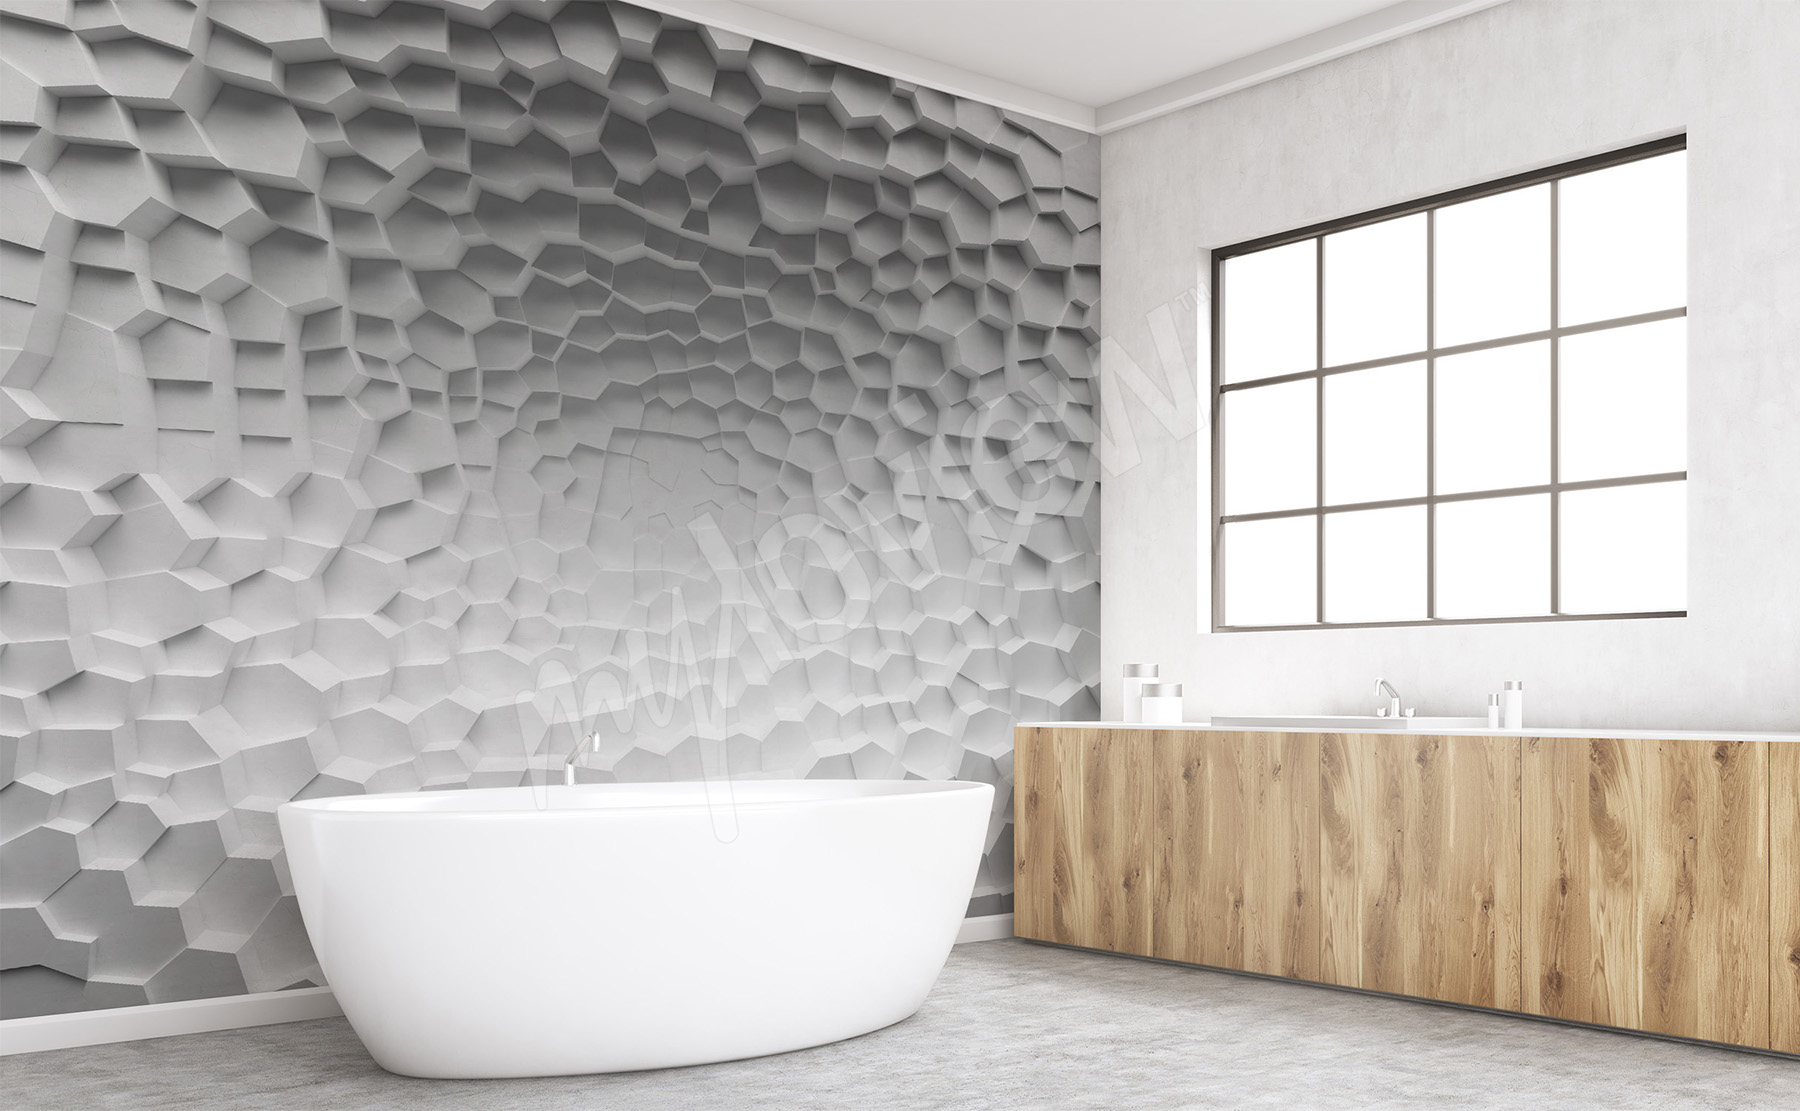 Murals Bathroom • to size of wall | myloview.com